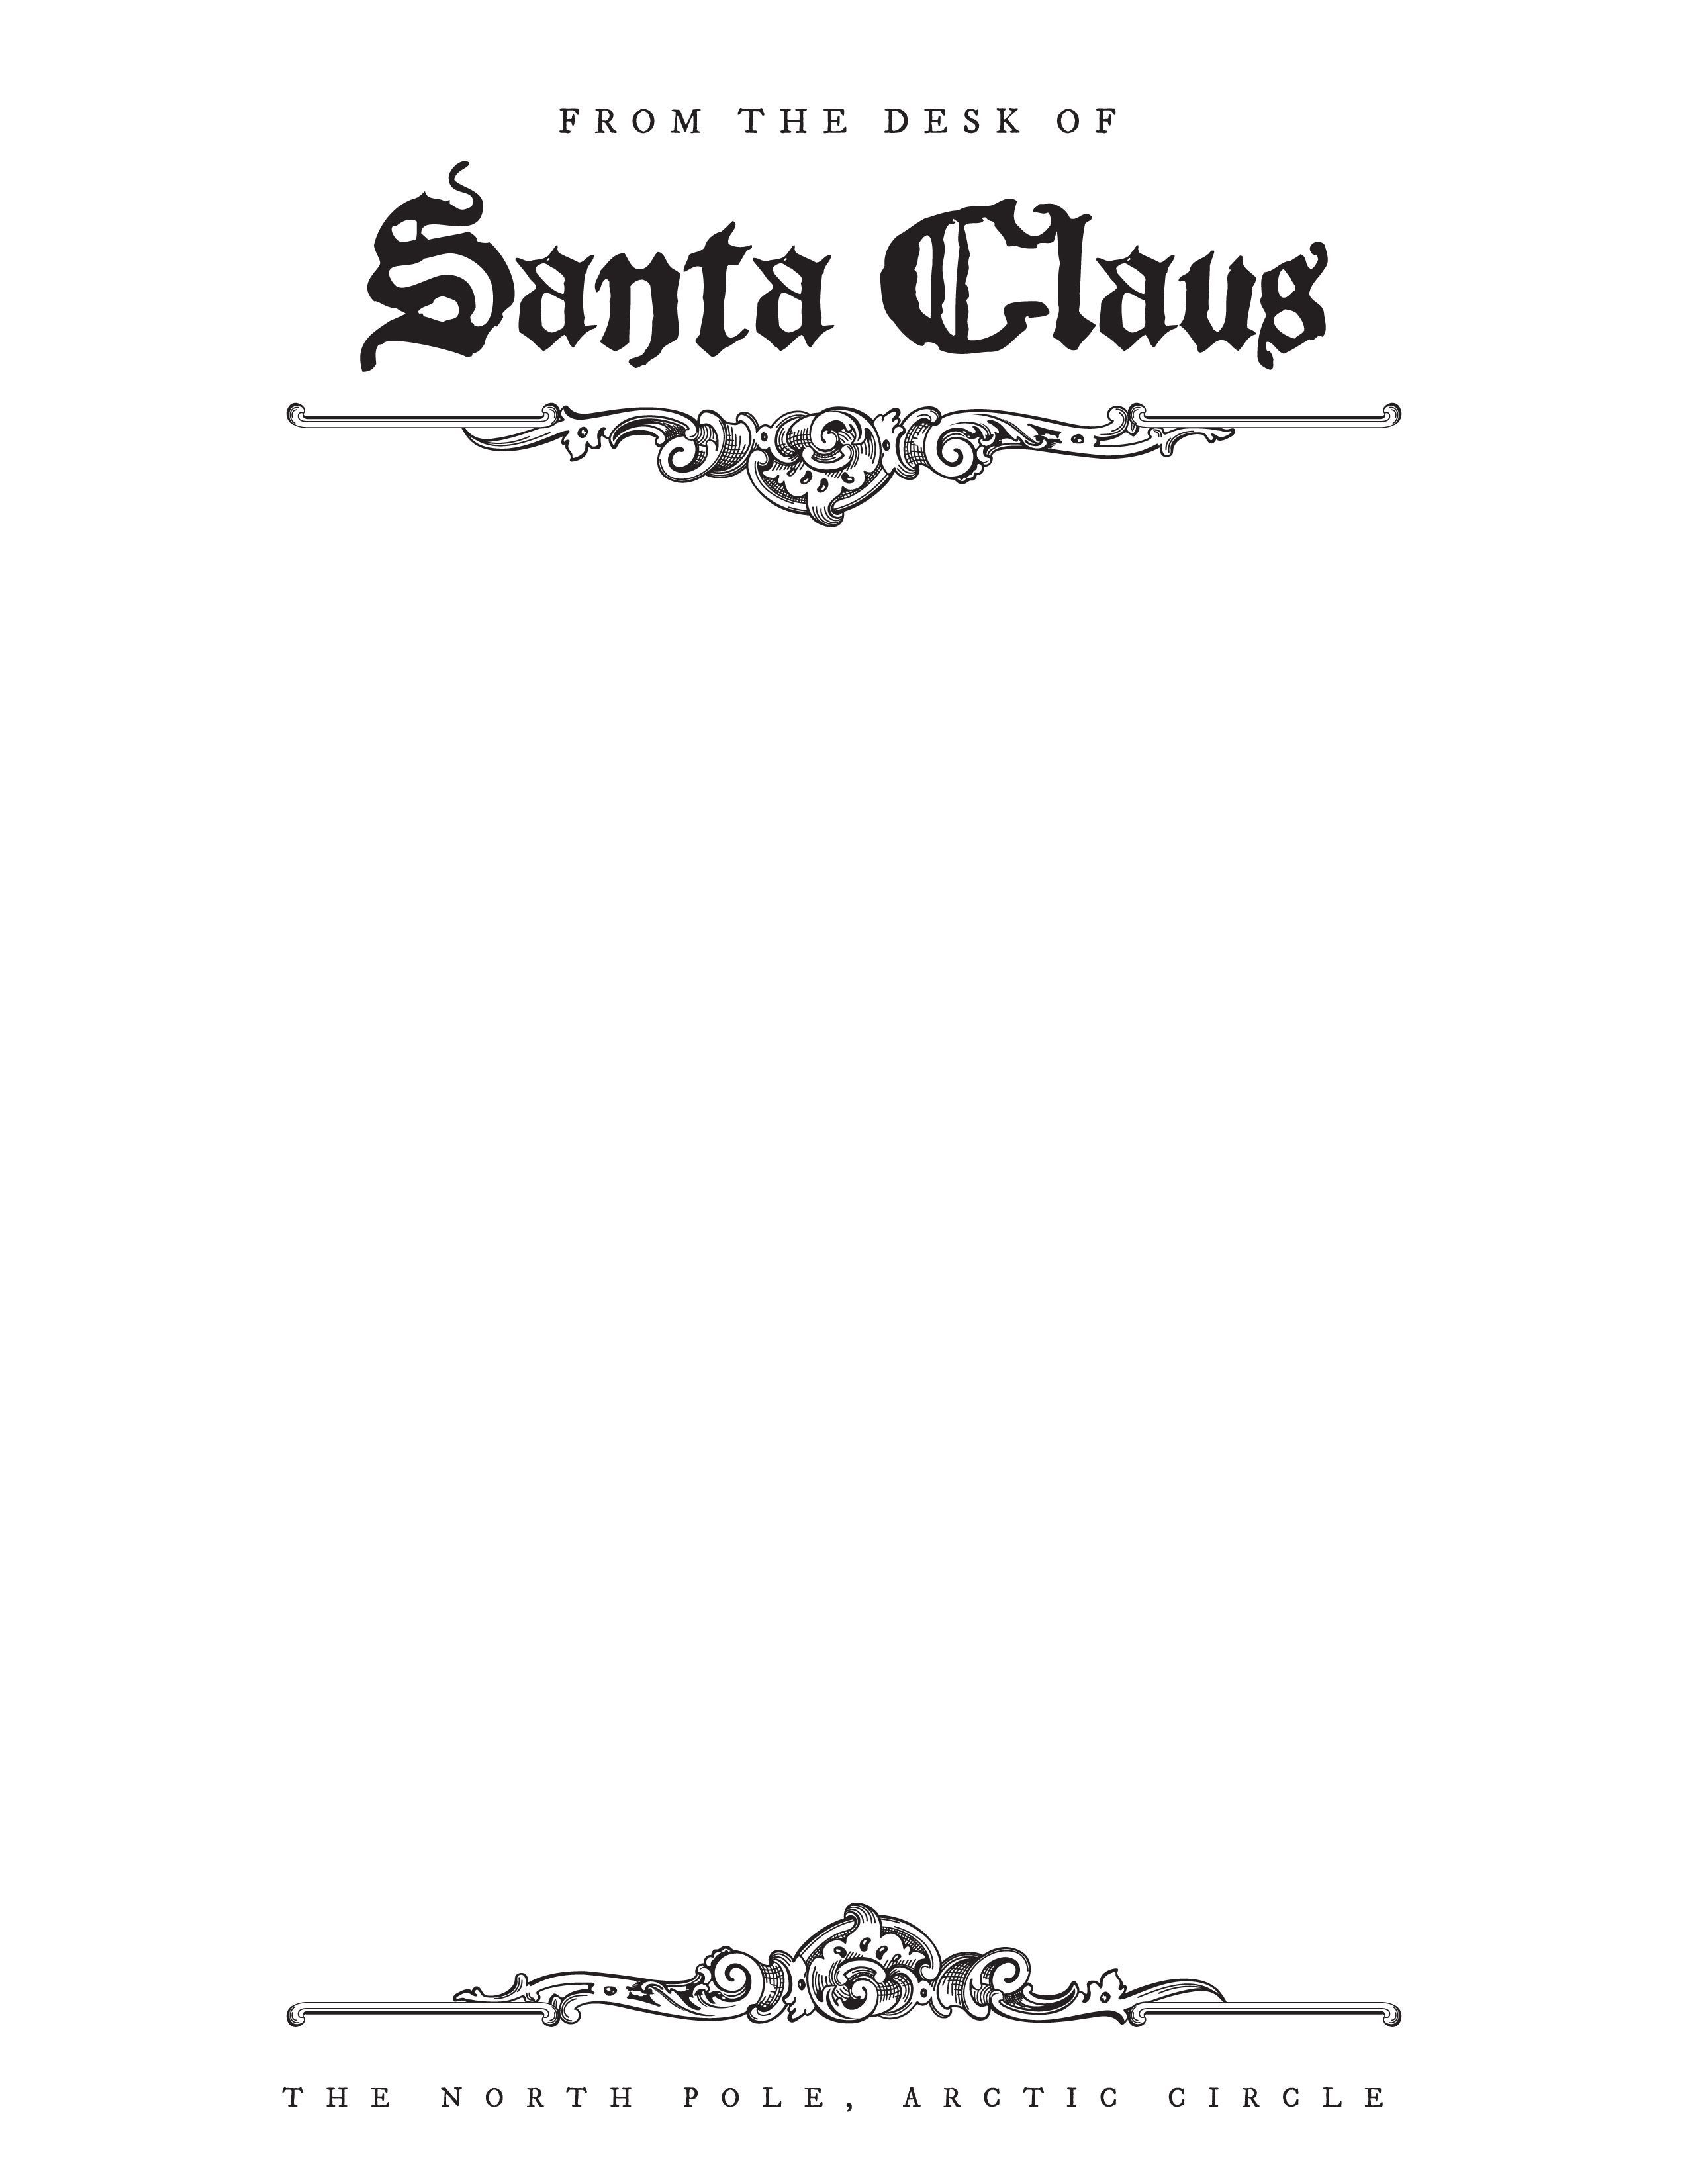 Free Letter From Santa Stationary Template   Christmas   Santa - North Pole Stationary Printable Free